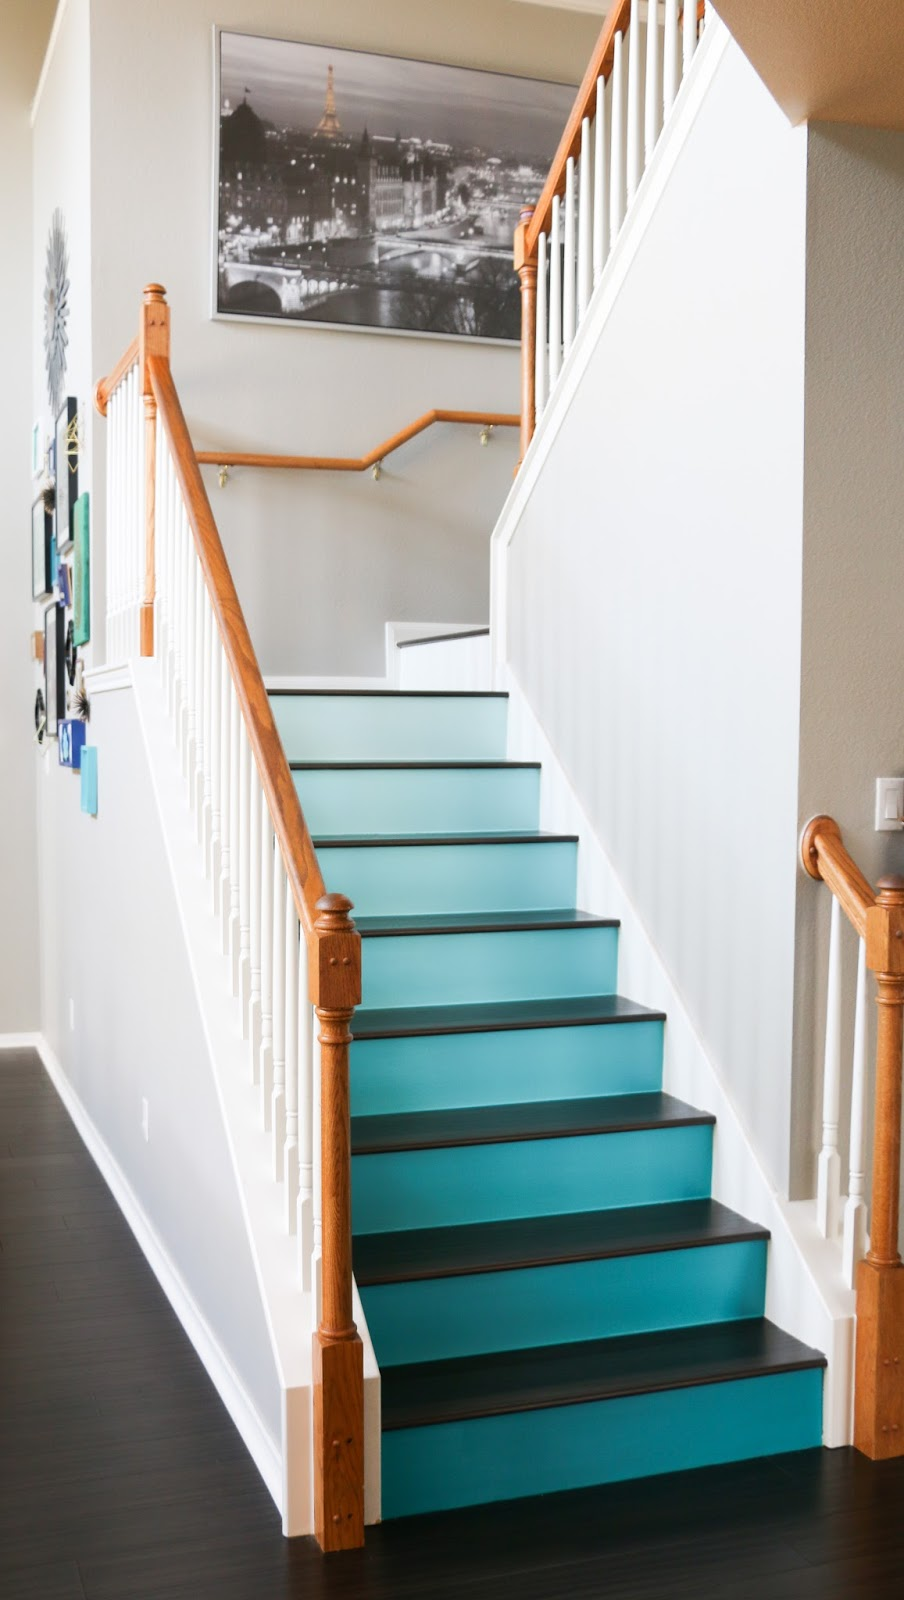 8 Step By Step Ways To Update Your Stairs Interior Design